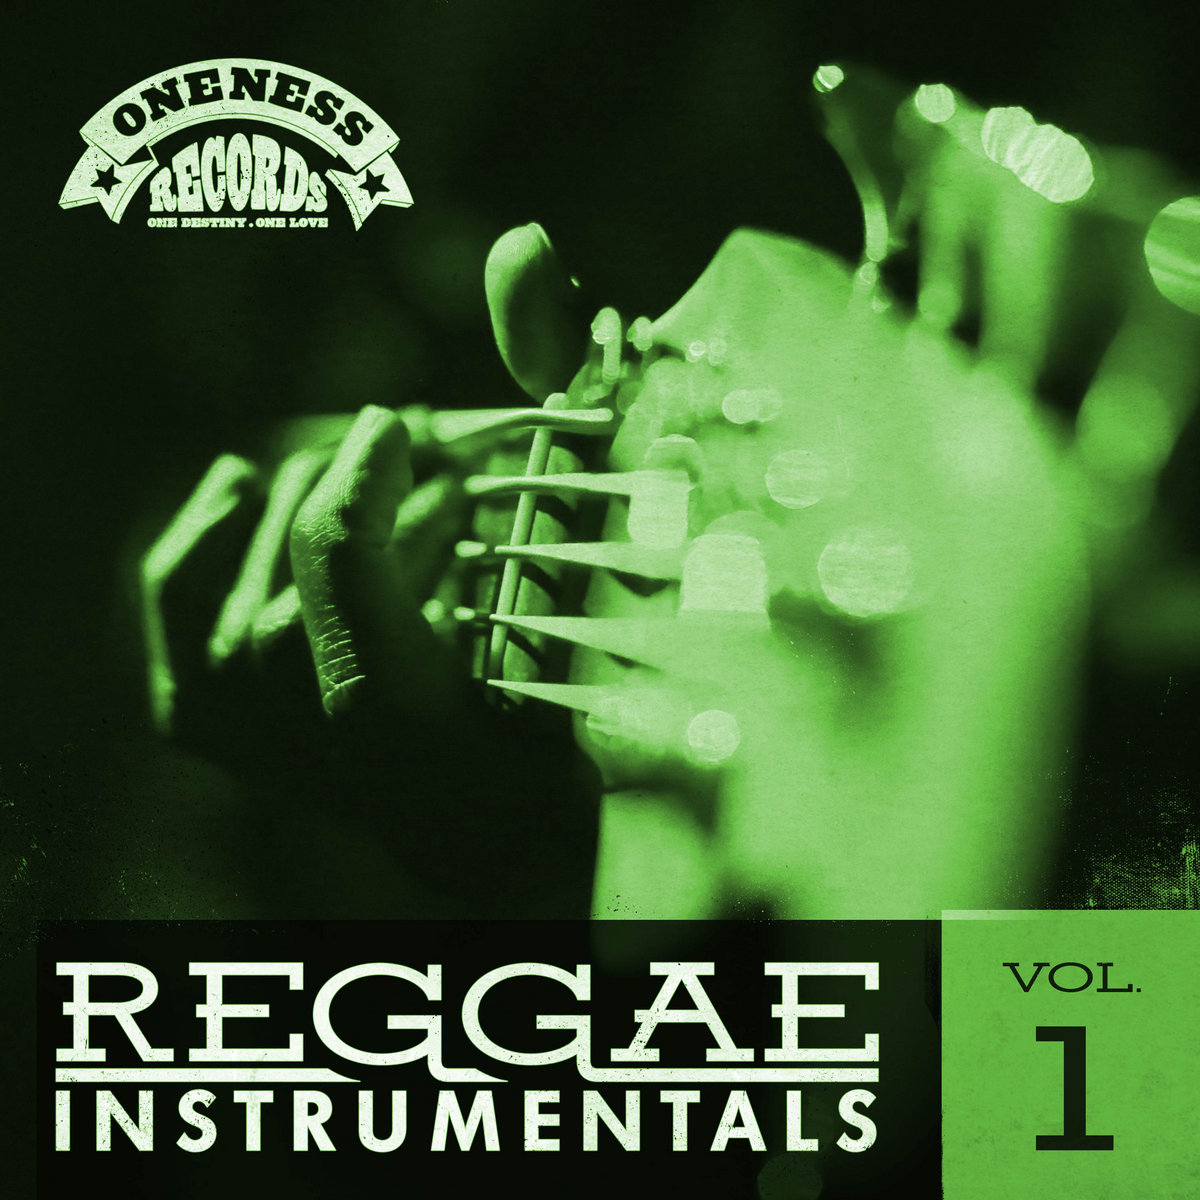 Reggae Instrumentals Vol 1 (Oneness Records Presents) | Oneness-Records